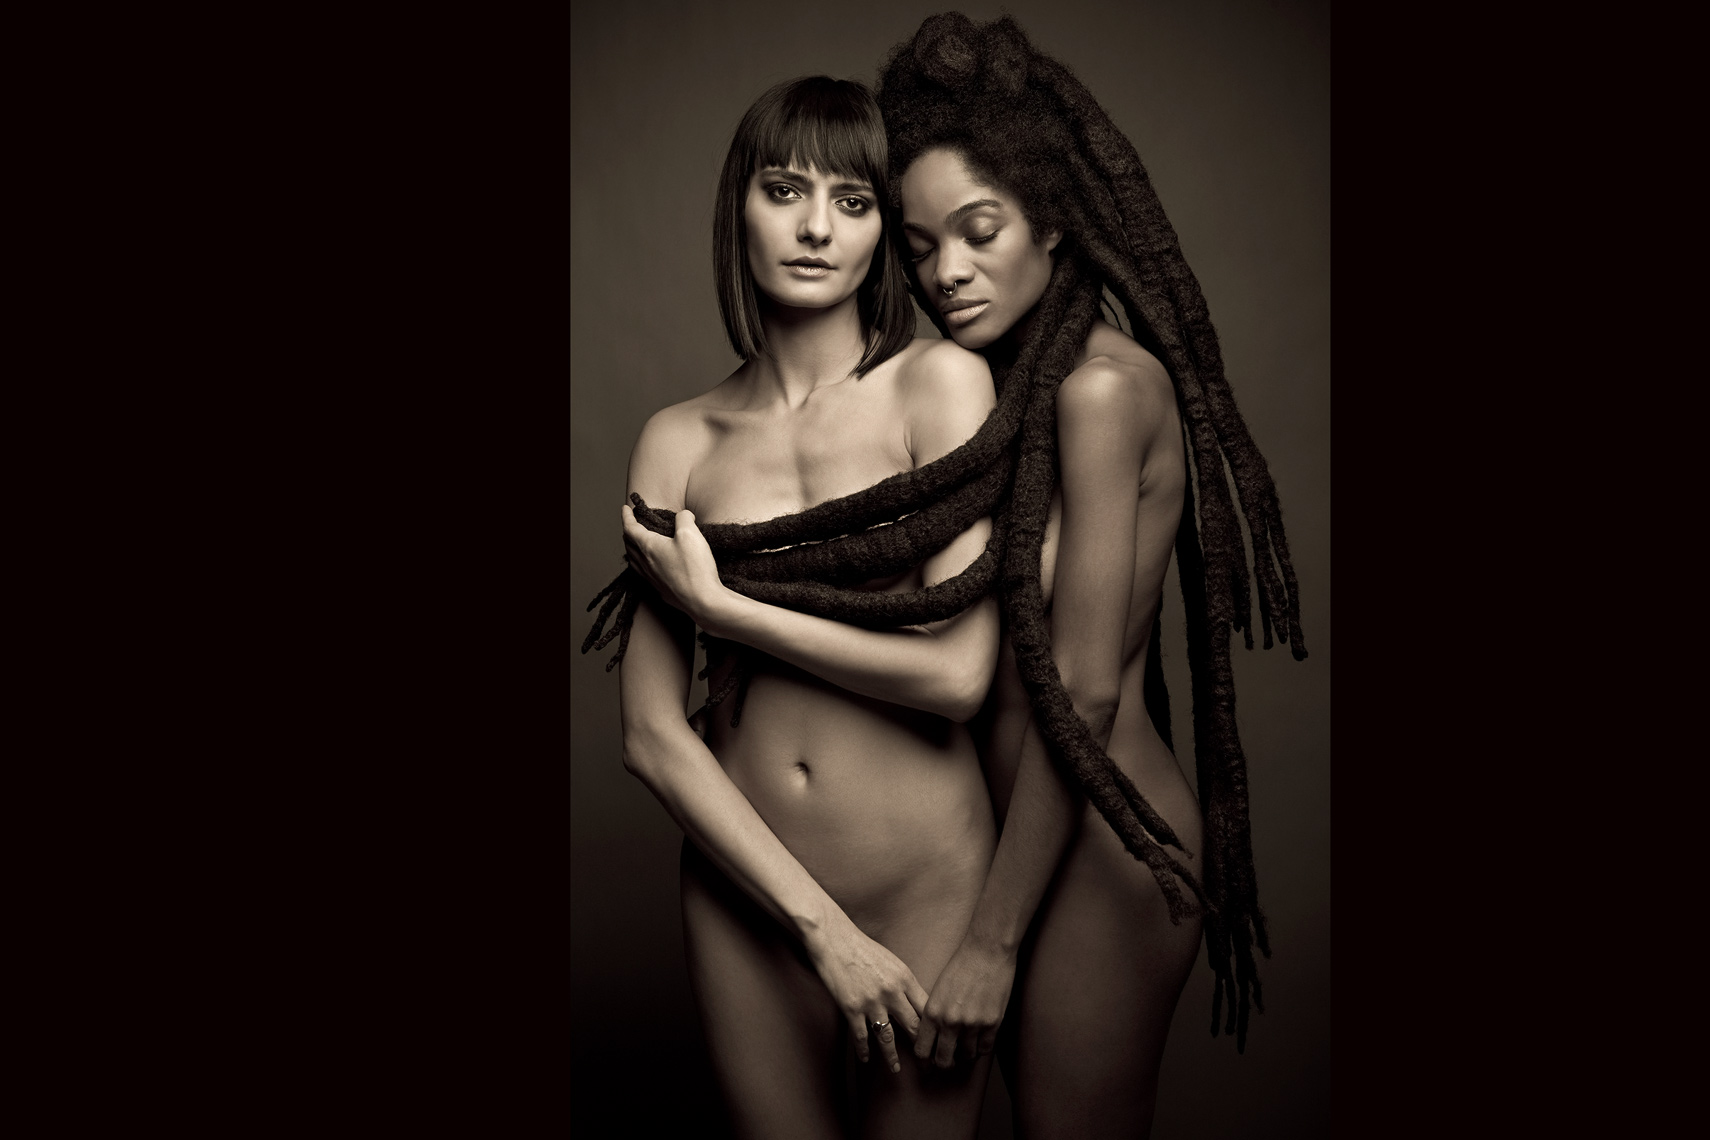 Los Angeles Portrait Photography, Michael Brian, pet, cat, Two nude women, sensual, African American, long dreads, studio beauty portrait